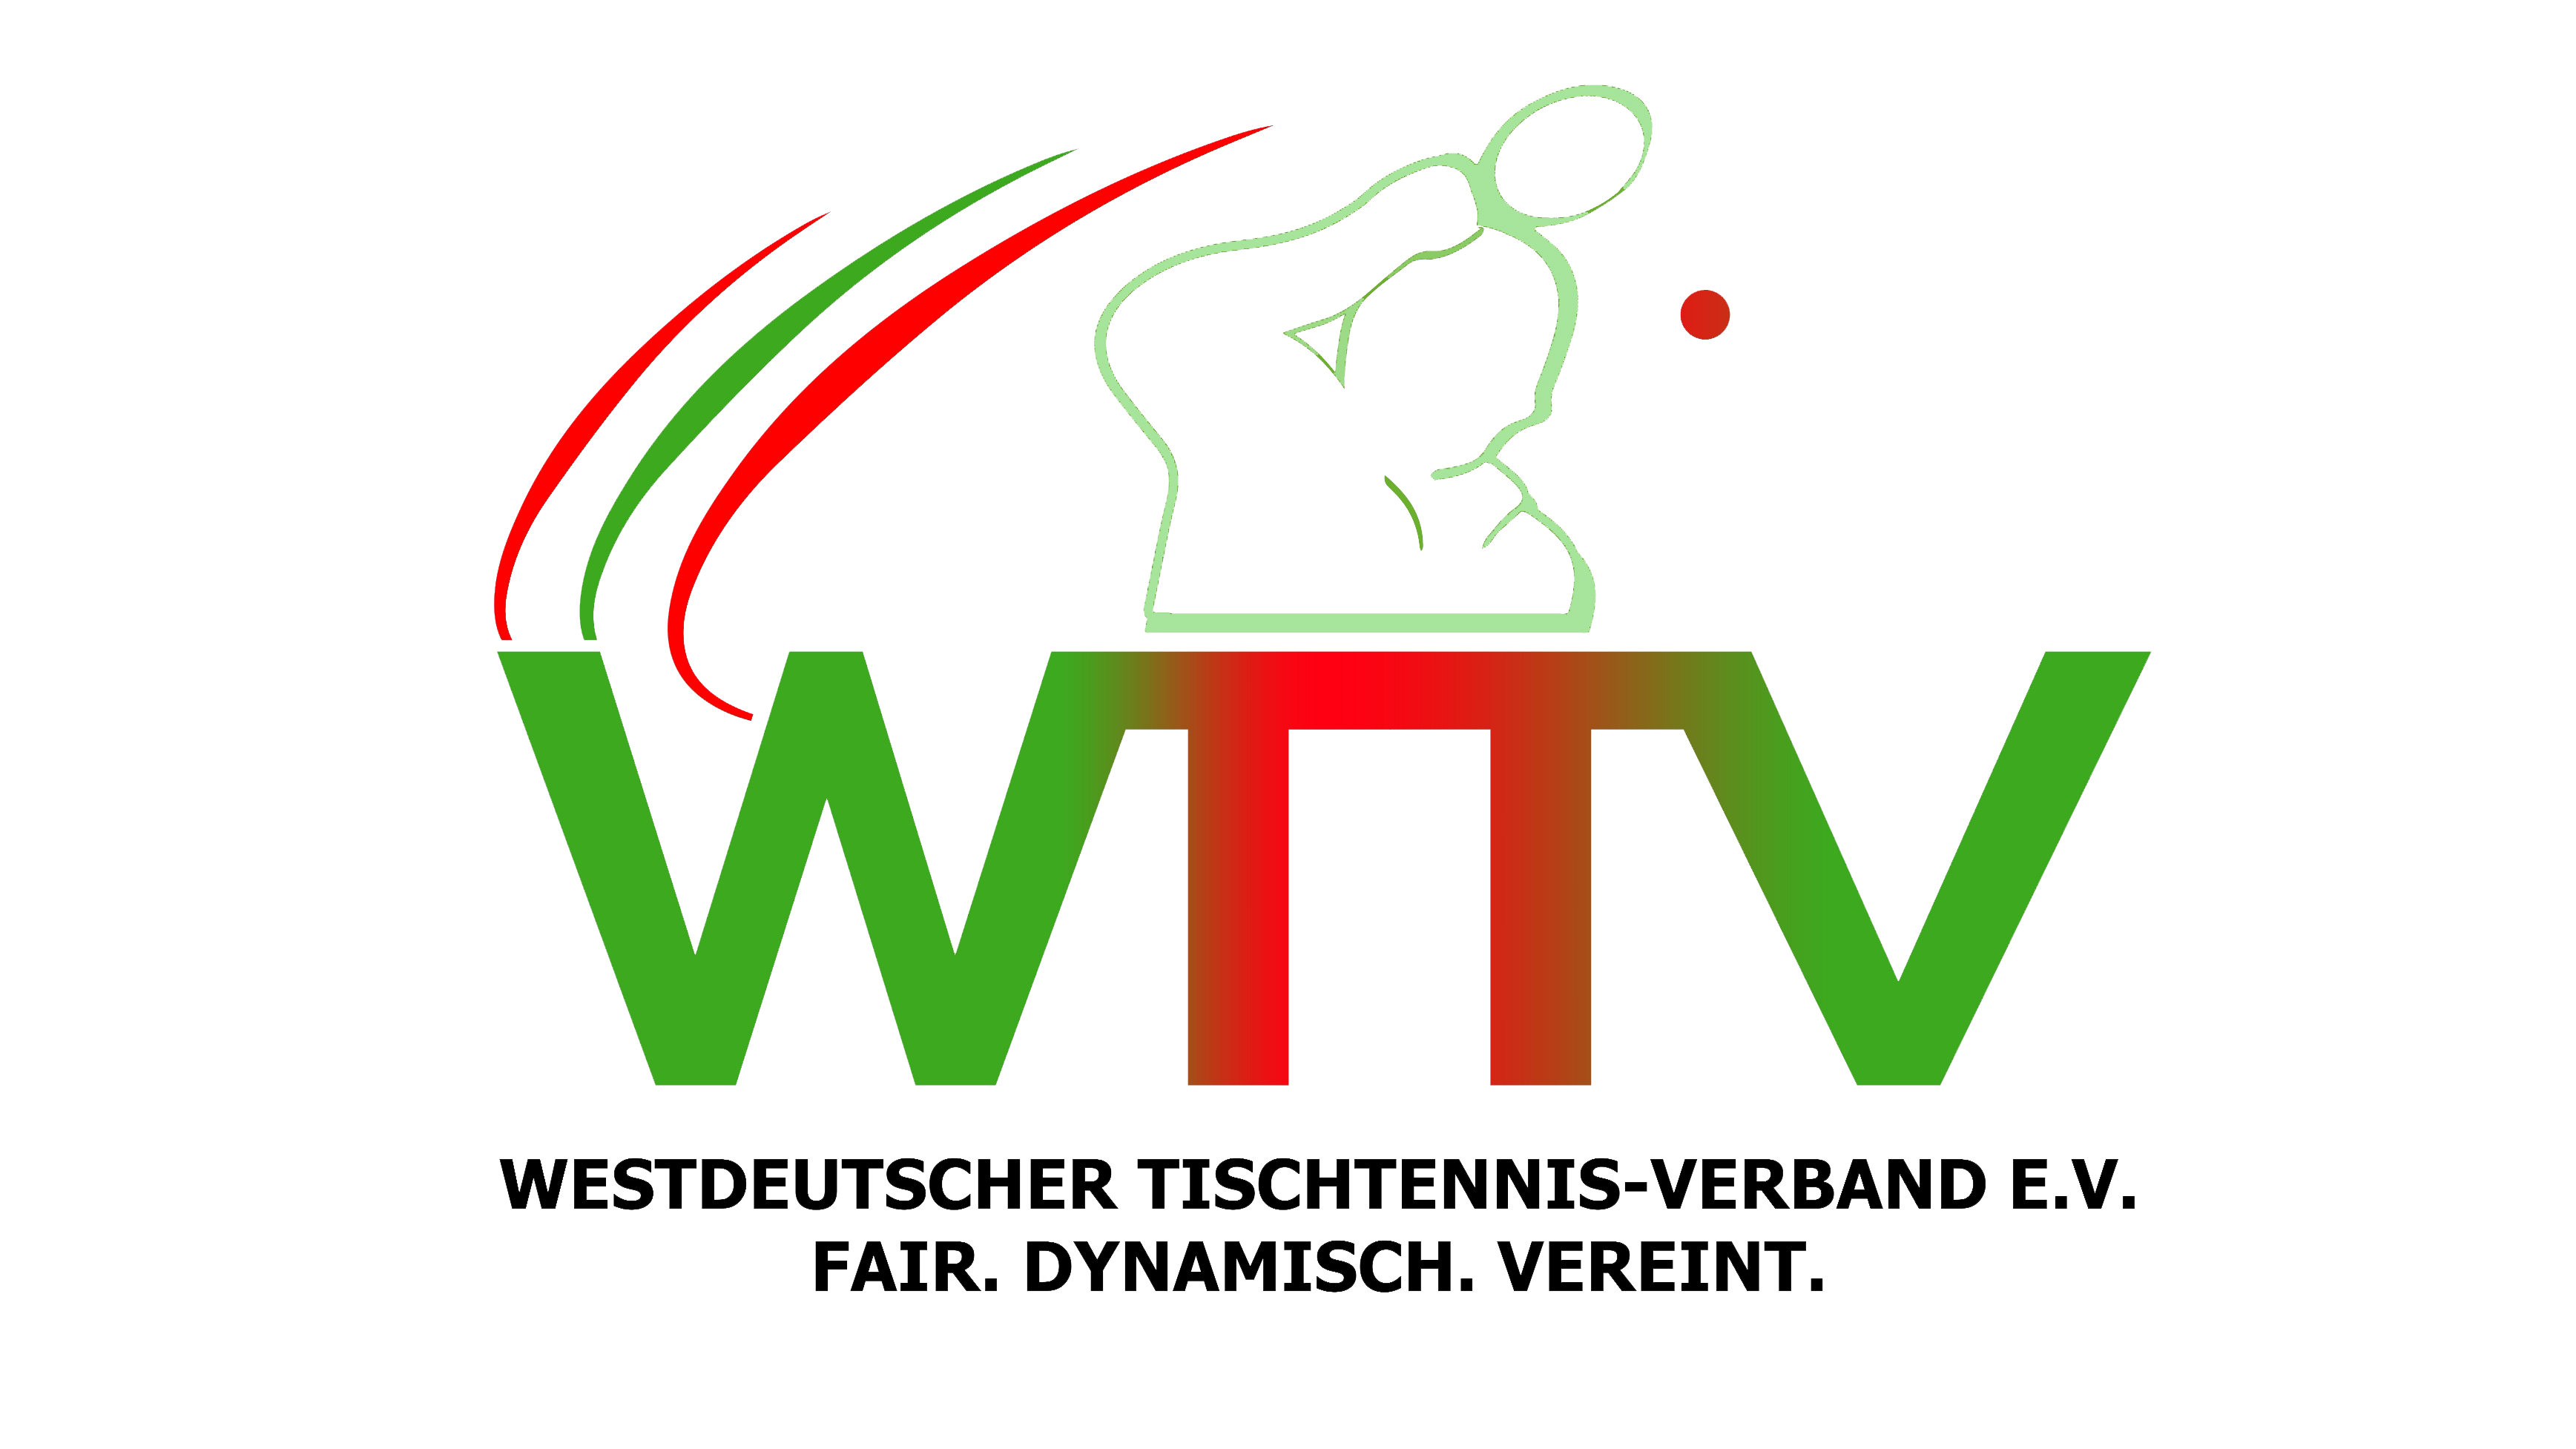 WTTV - Westdeutscher Tischtennis-Verband e.V.